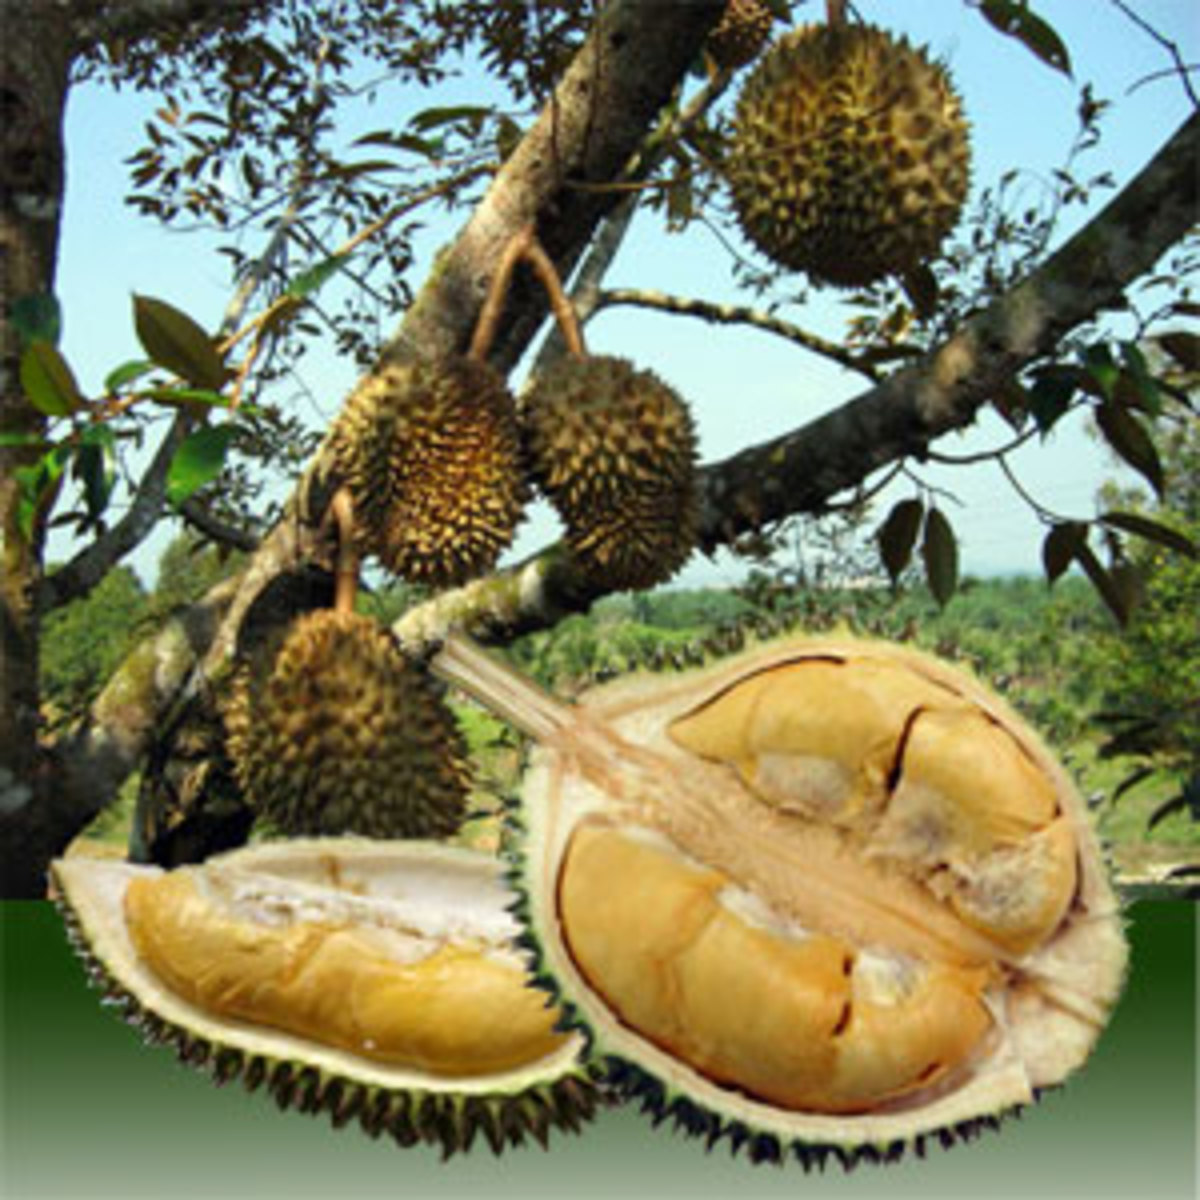 Durian fruits are borne on lateral branches. An opened fruit showing the edible arils or flesh or pulp